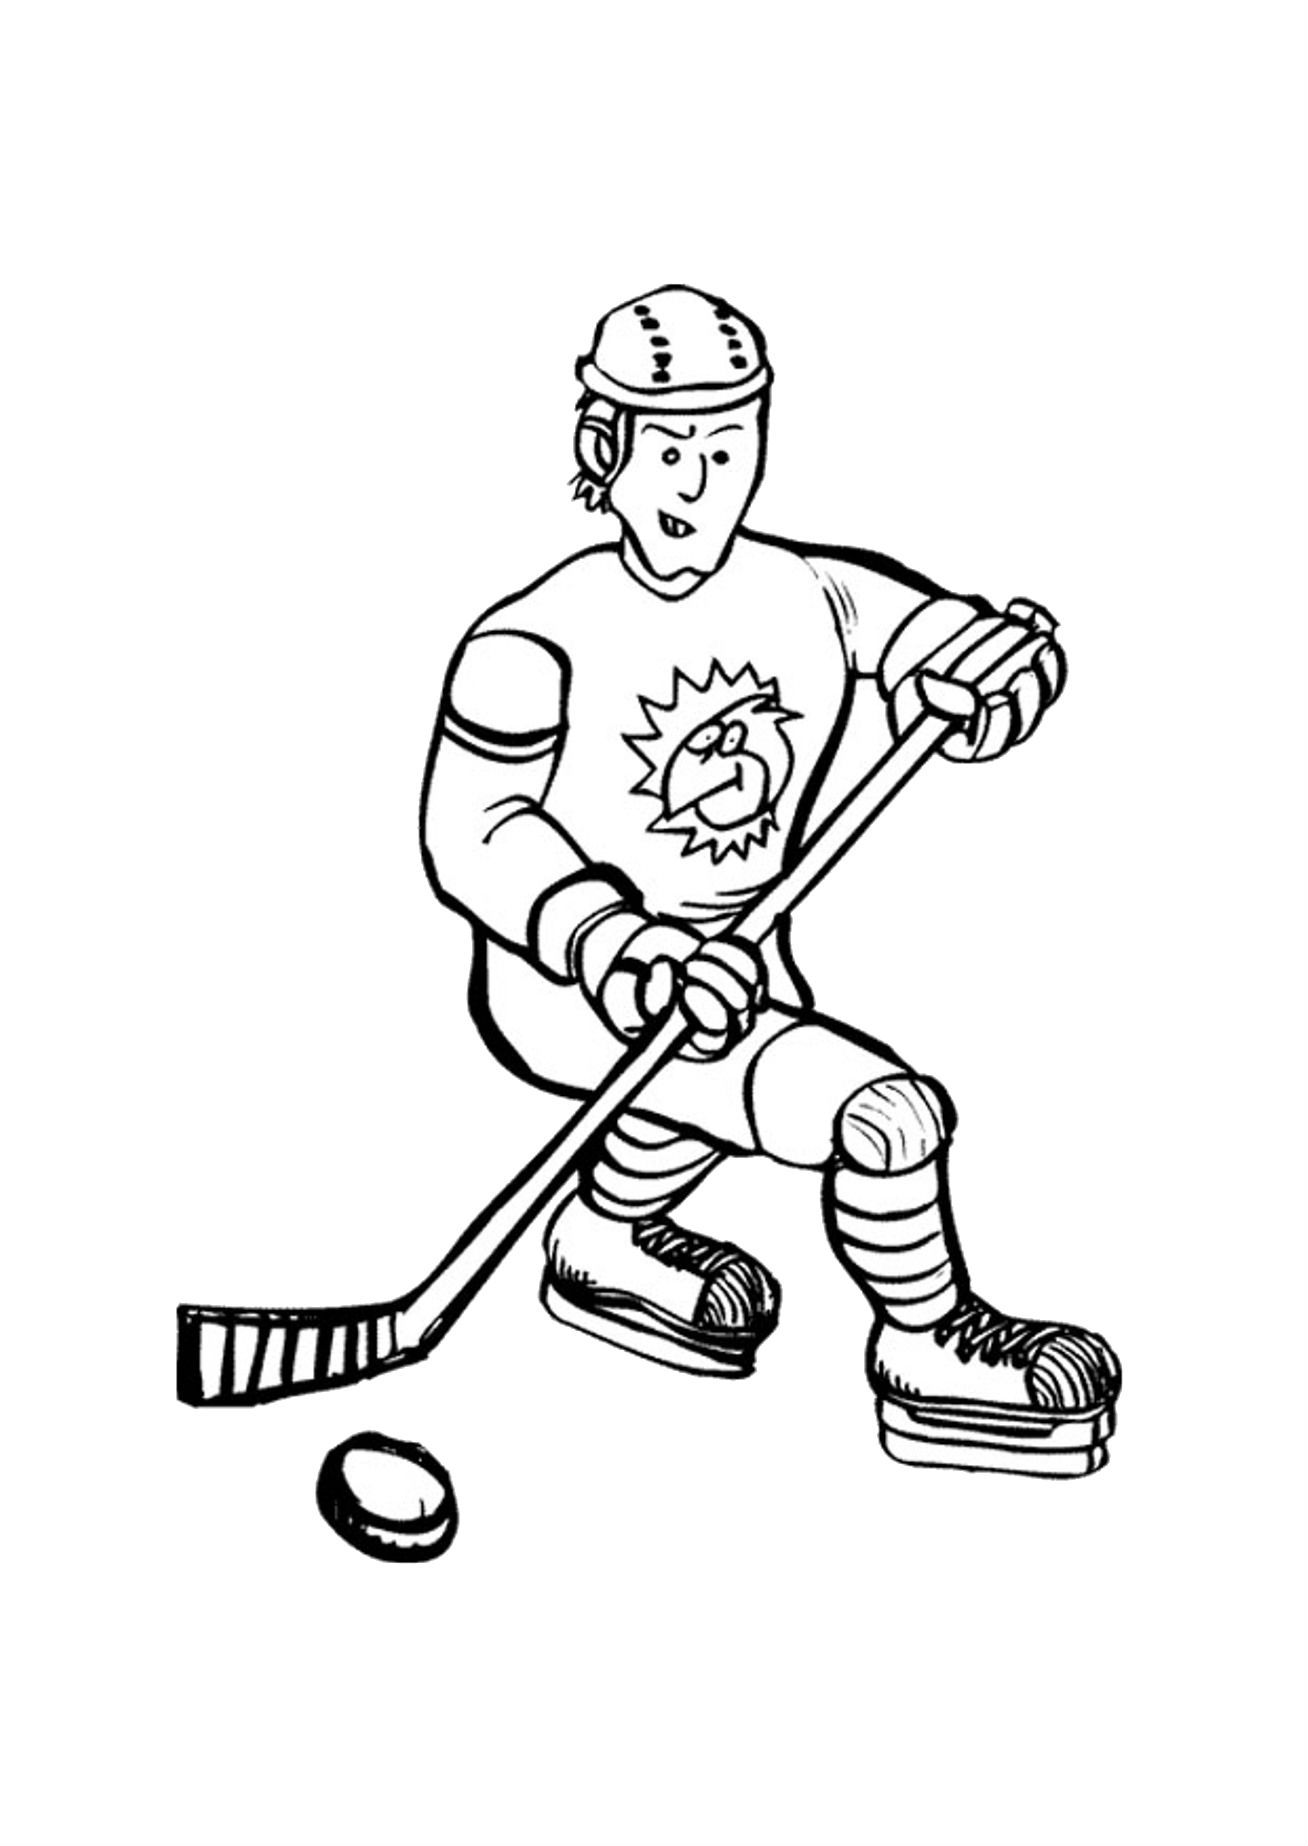 Serious Face Playing Hockey Coloring Pages For Kids Z2 Printable Hockey Coloring Sports Coloring Pages Coloring Pages For Kids Coloring Pages Inspirational